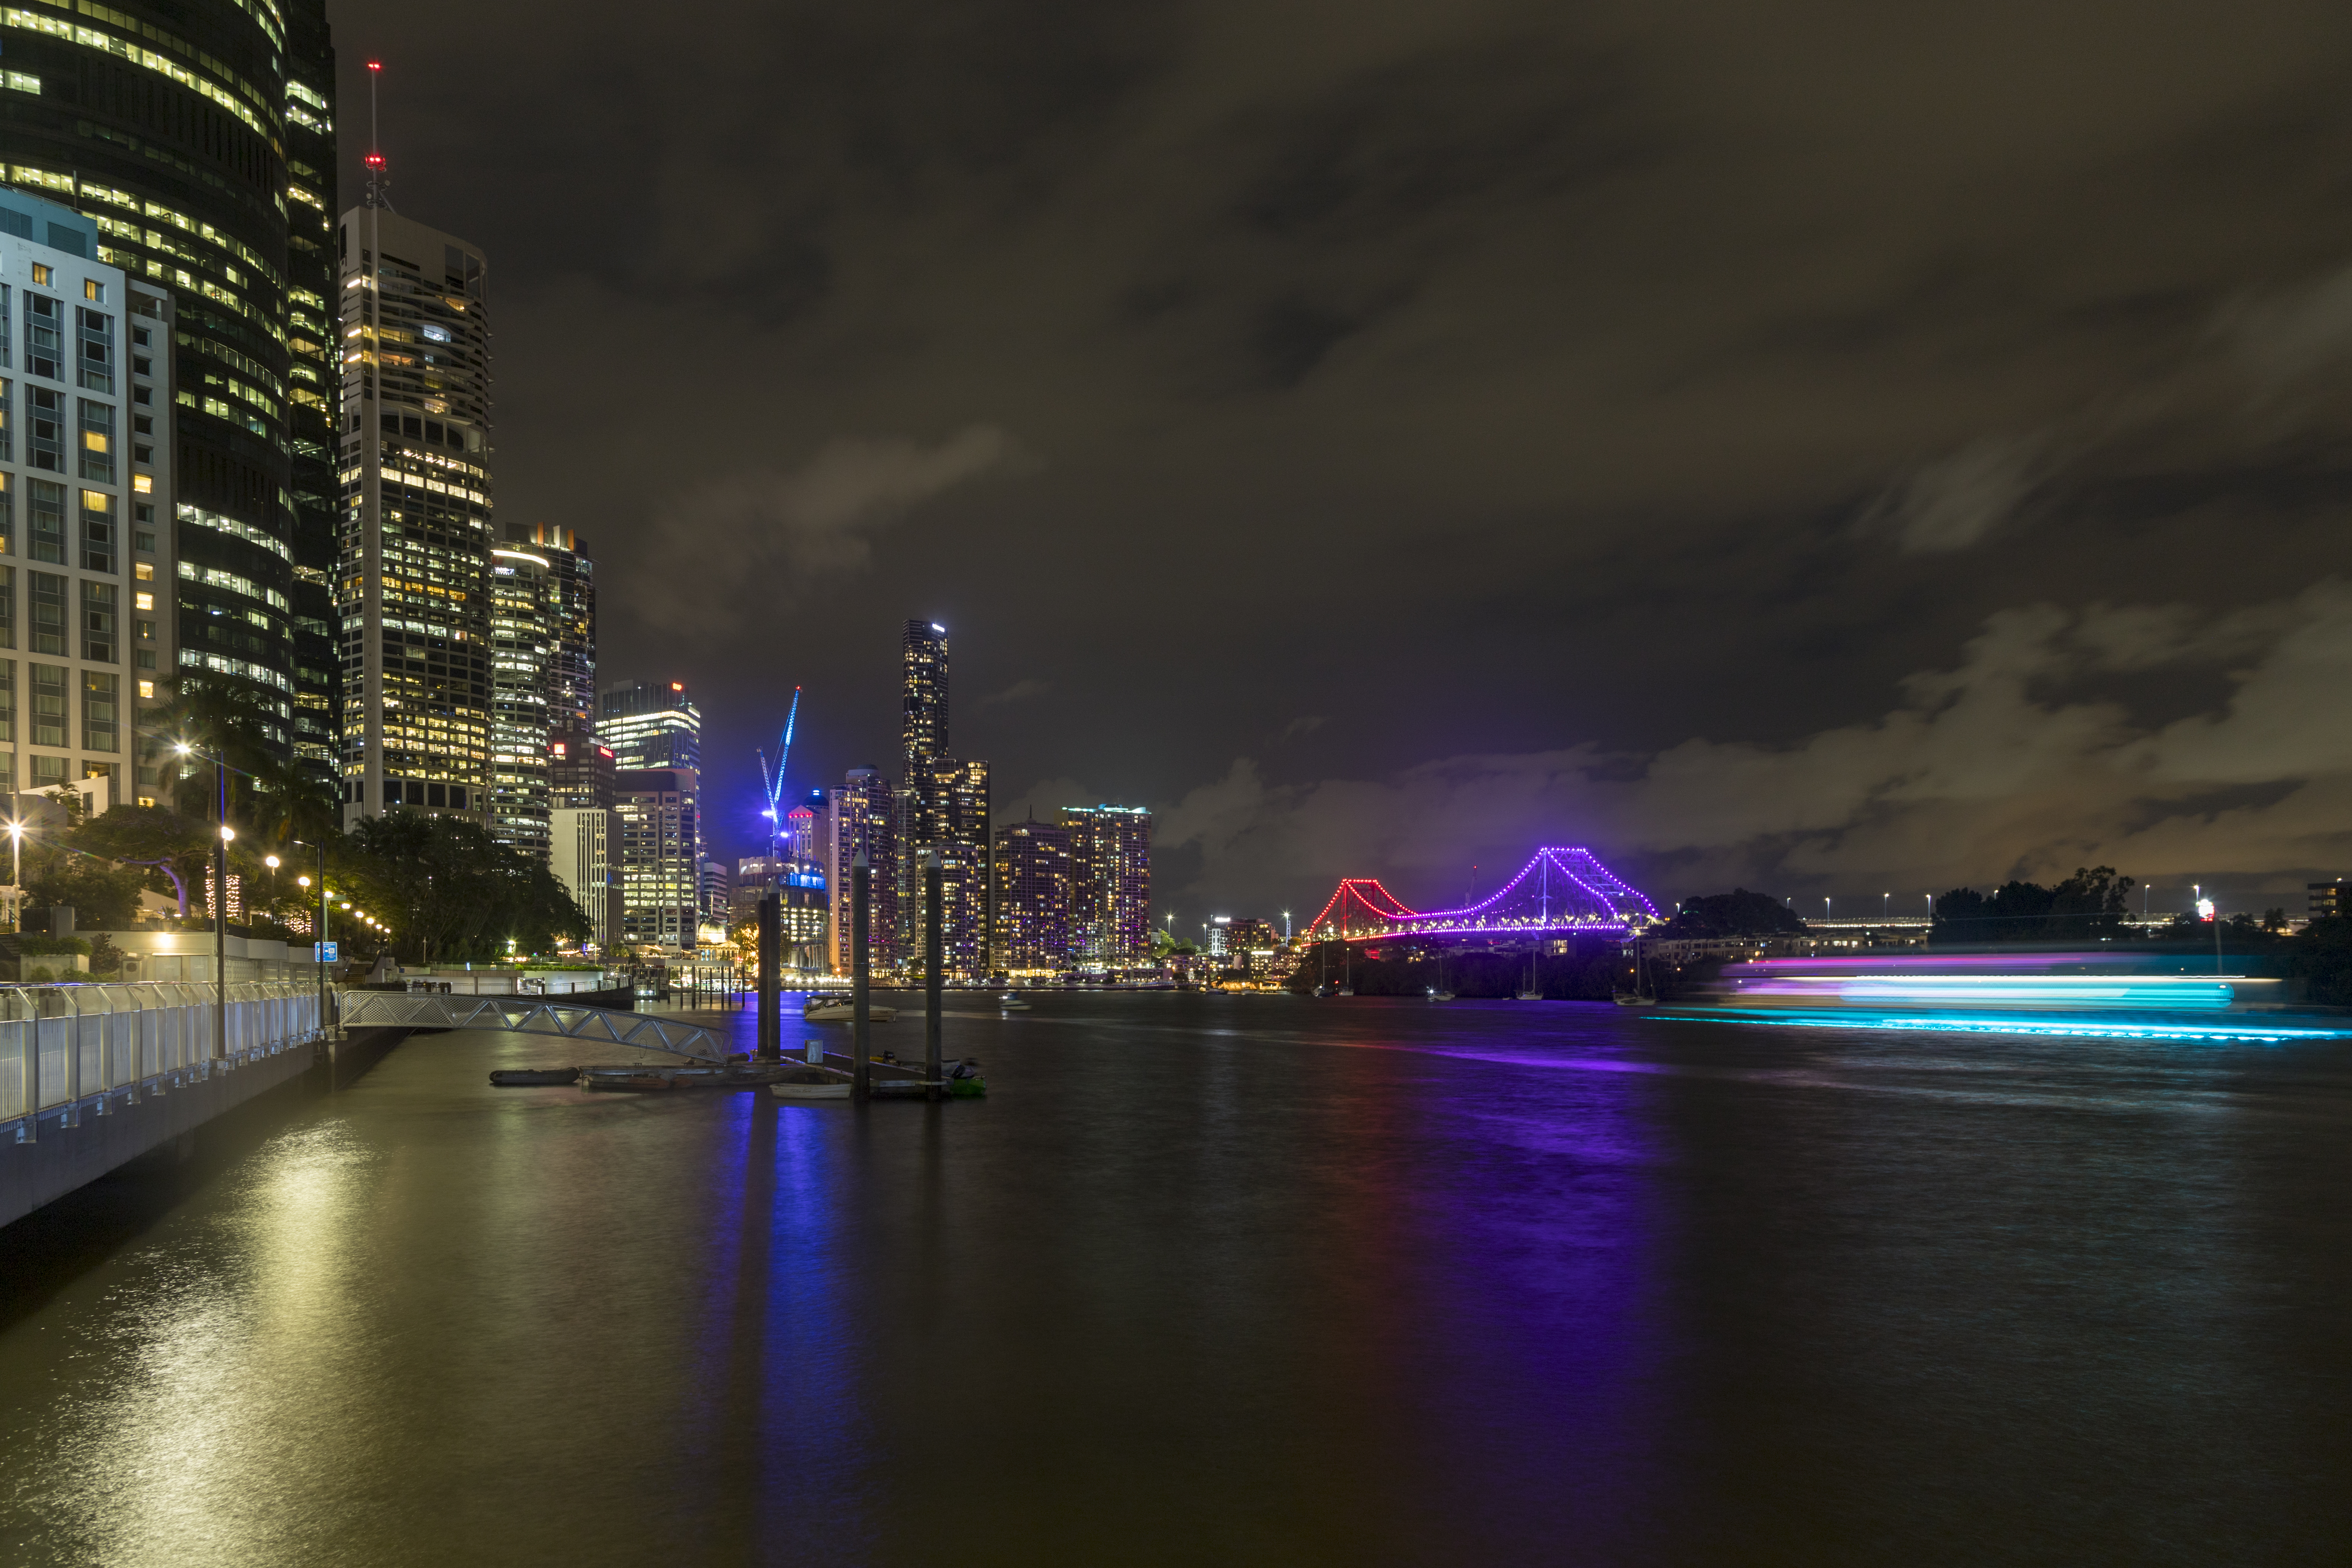 Story Bridge in the distance, from Gardens Point Boat Harbour